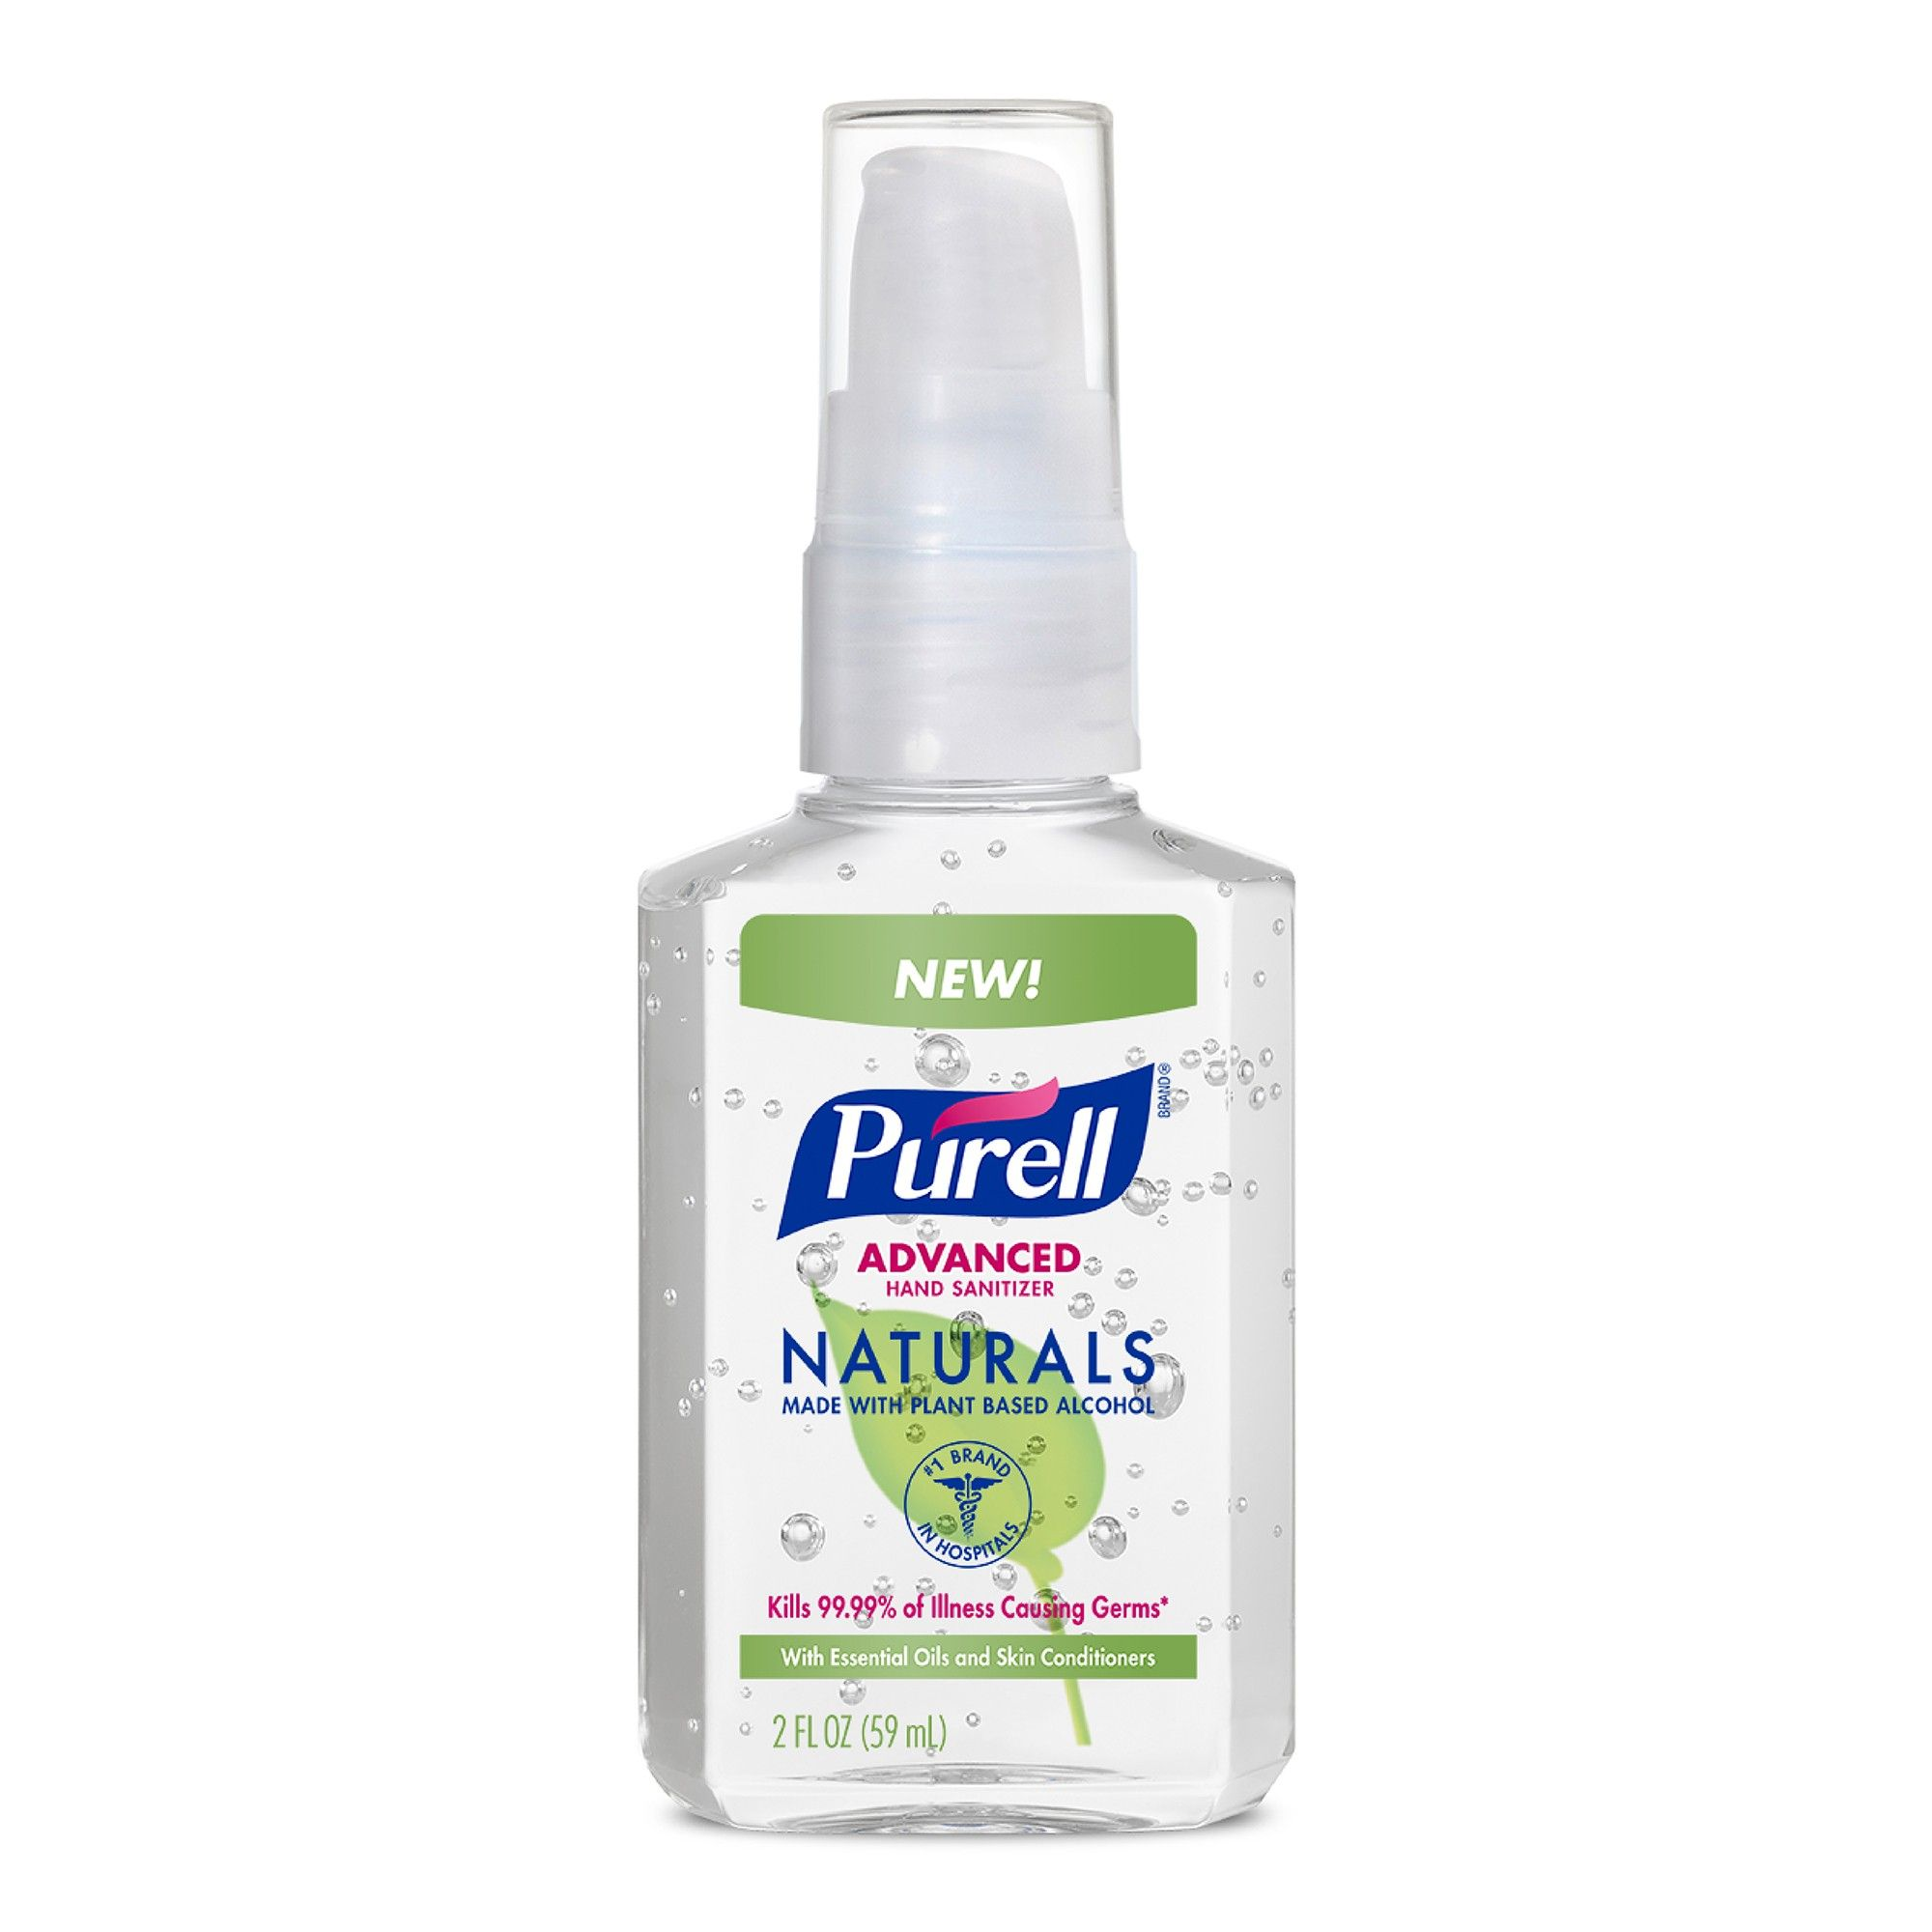 Purell Naturals Advanced Hand Sanitizer 2 Fl Oz With Images